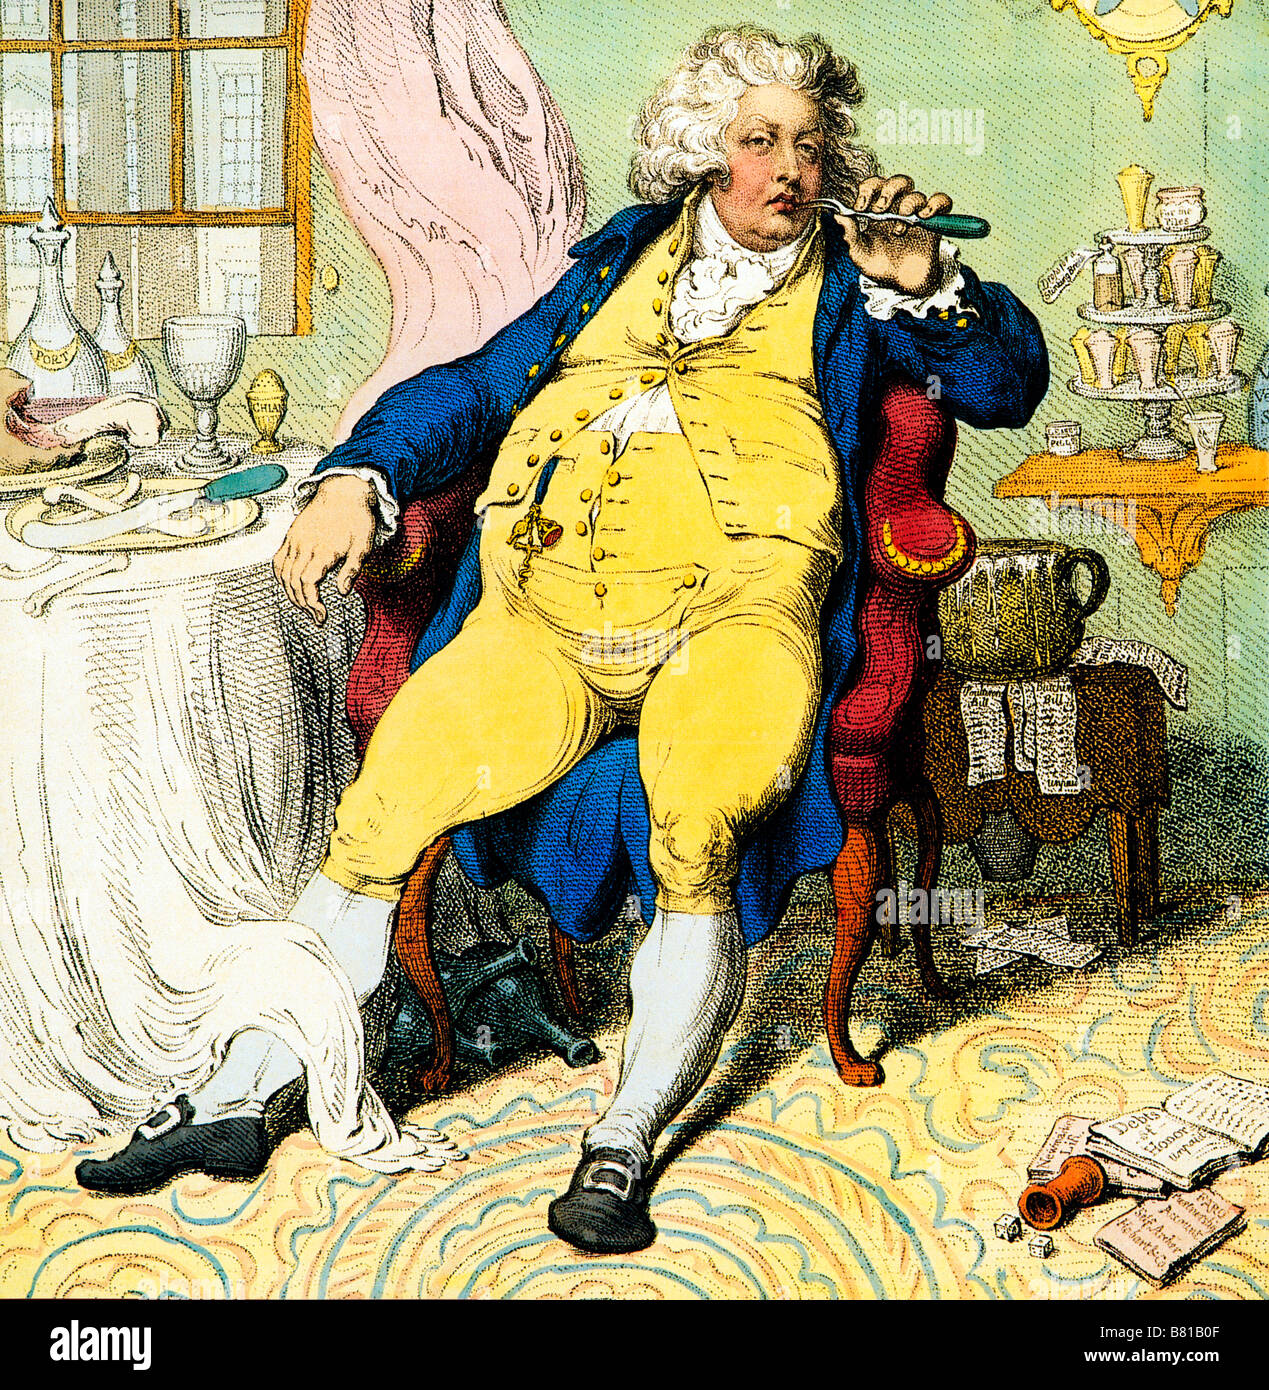 George IV as Prince of Wales 1792 caricature by Gillray of A Voluptuary Under The Horrors Of Digestion - Stock Image